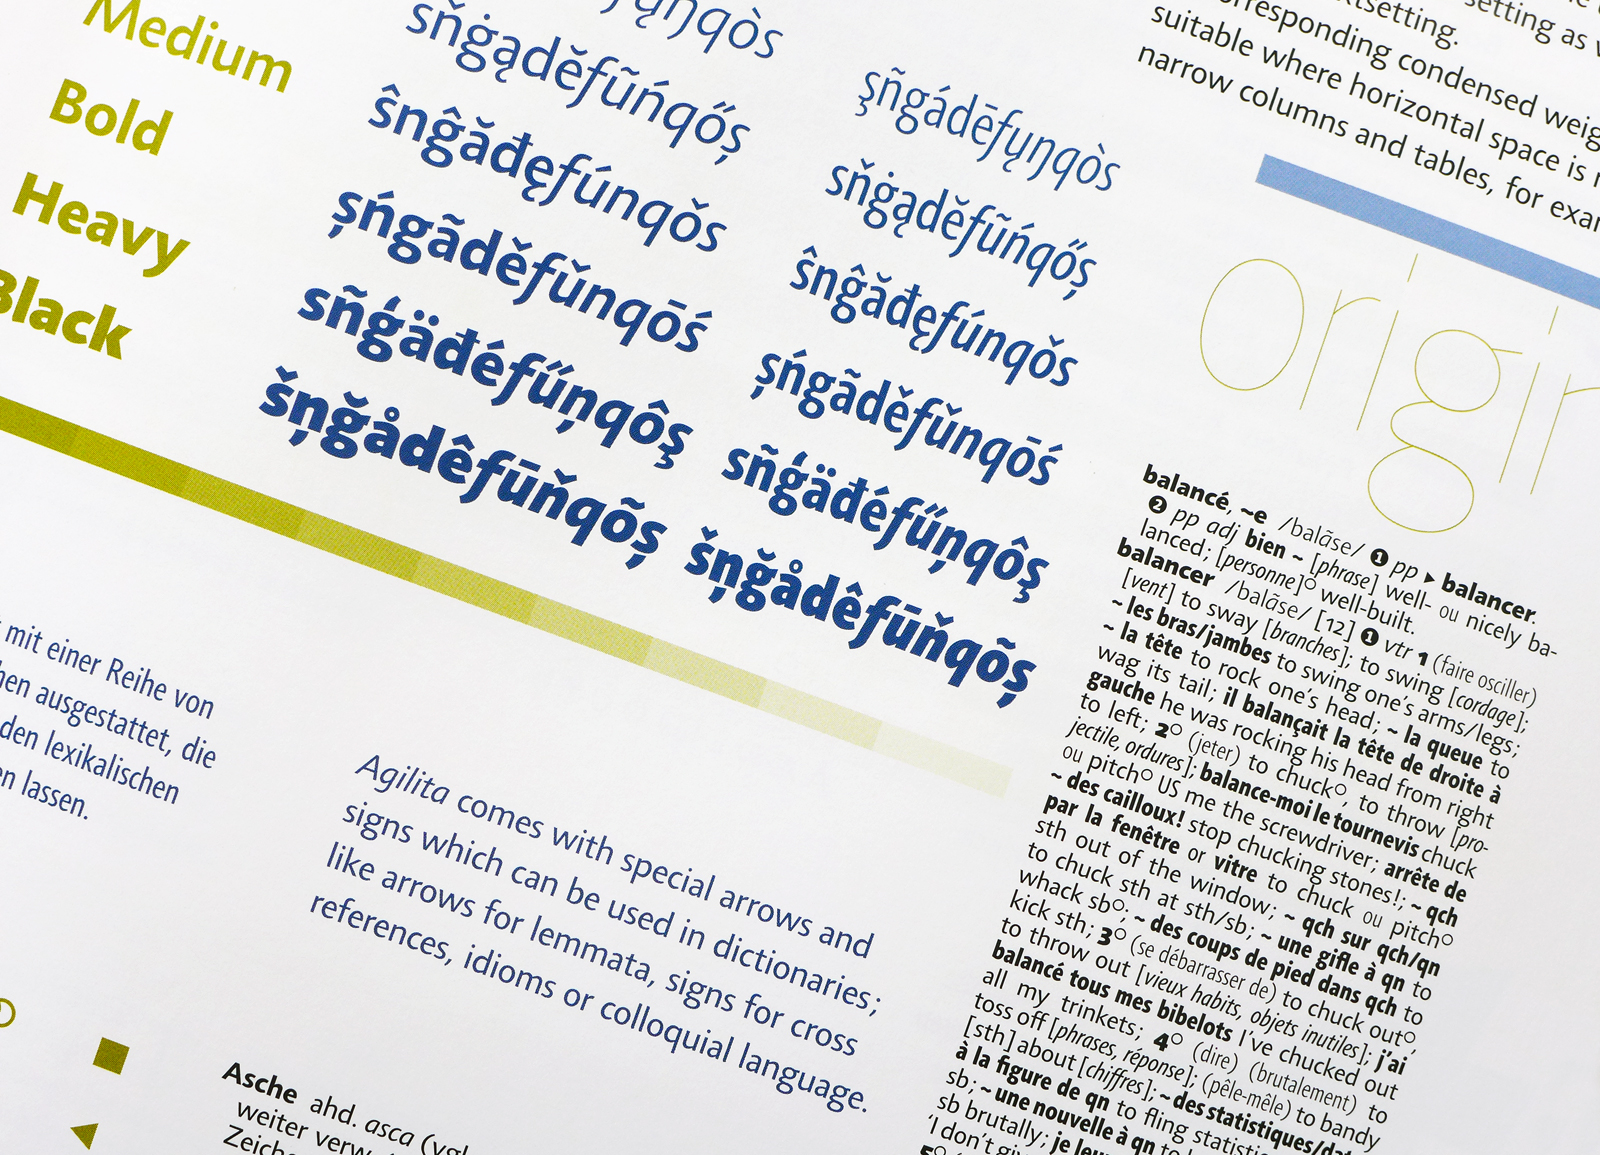 foreign characters in Agilita typeface